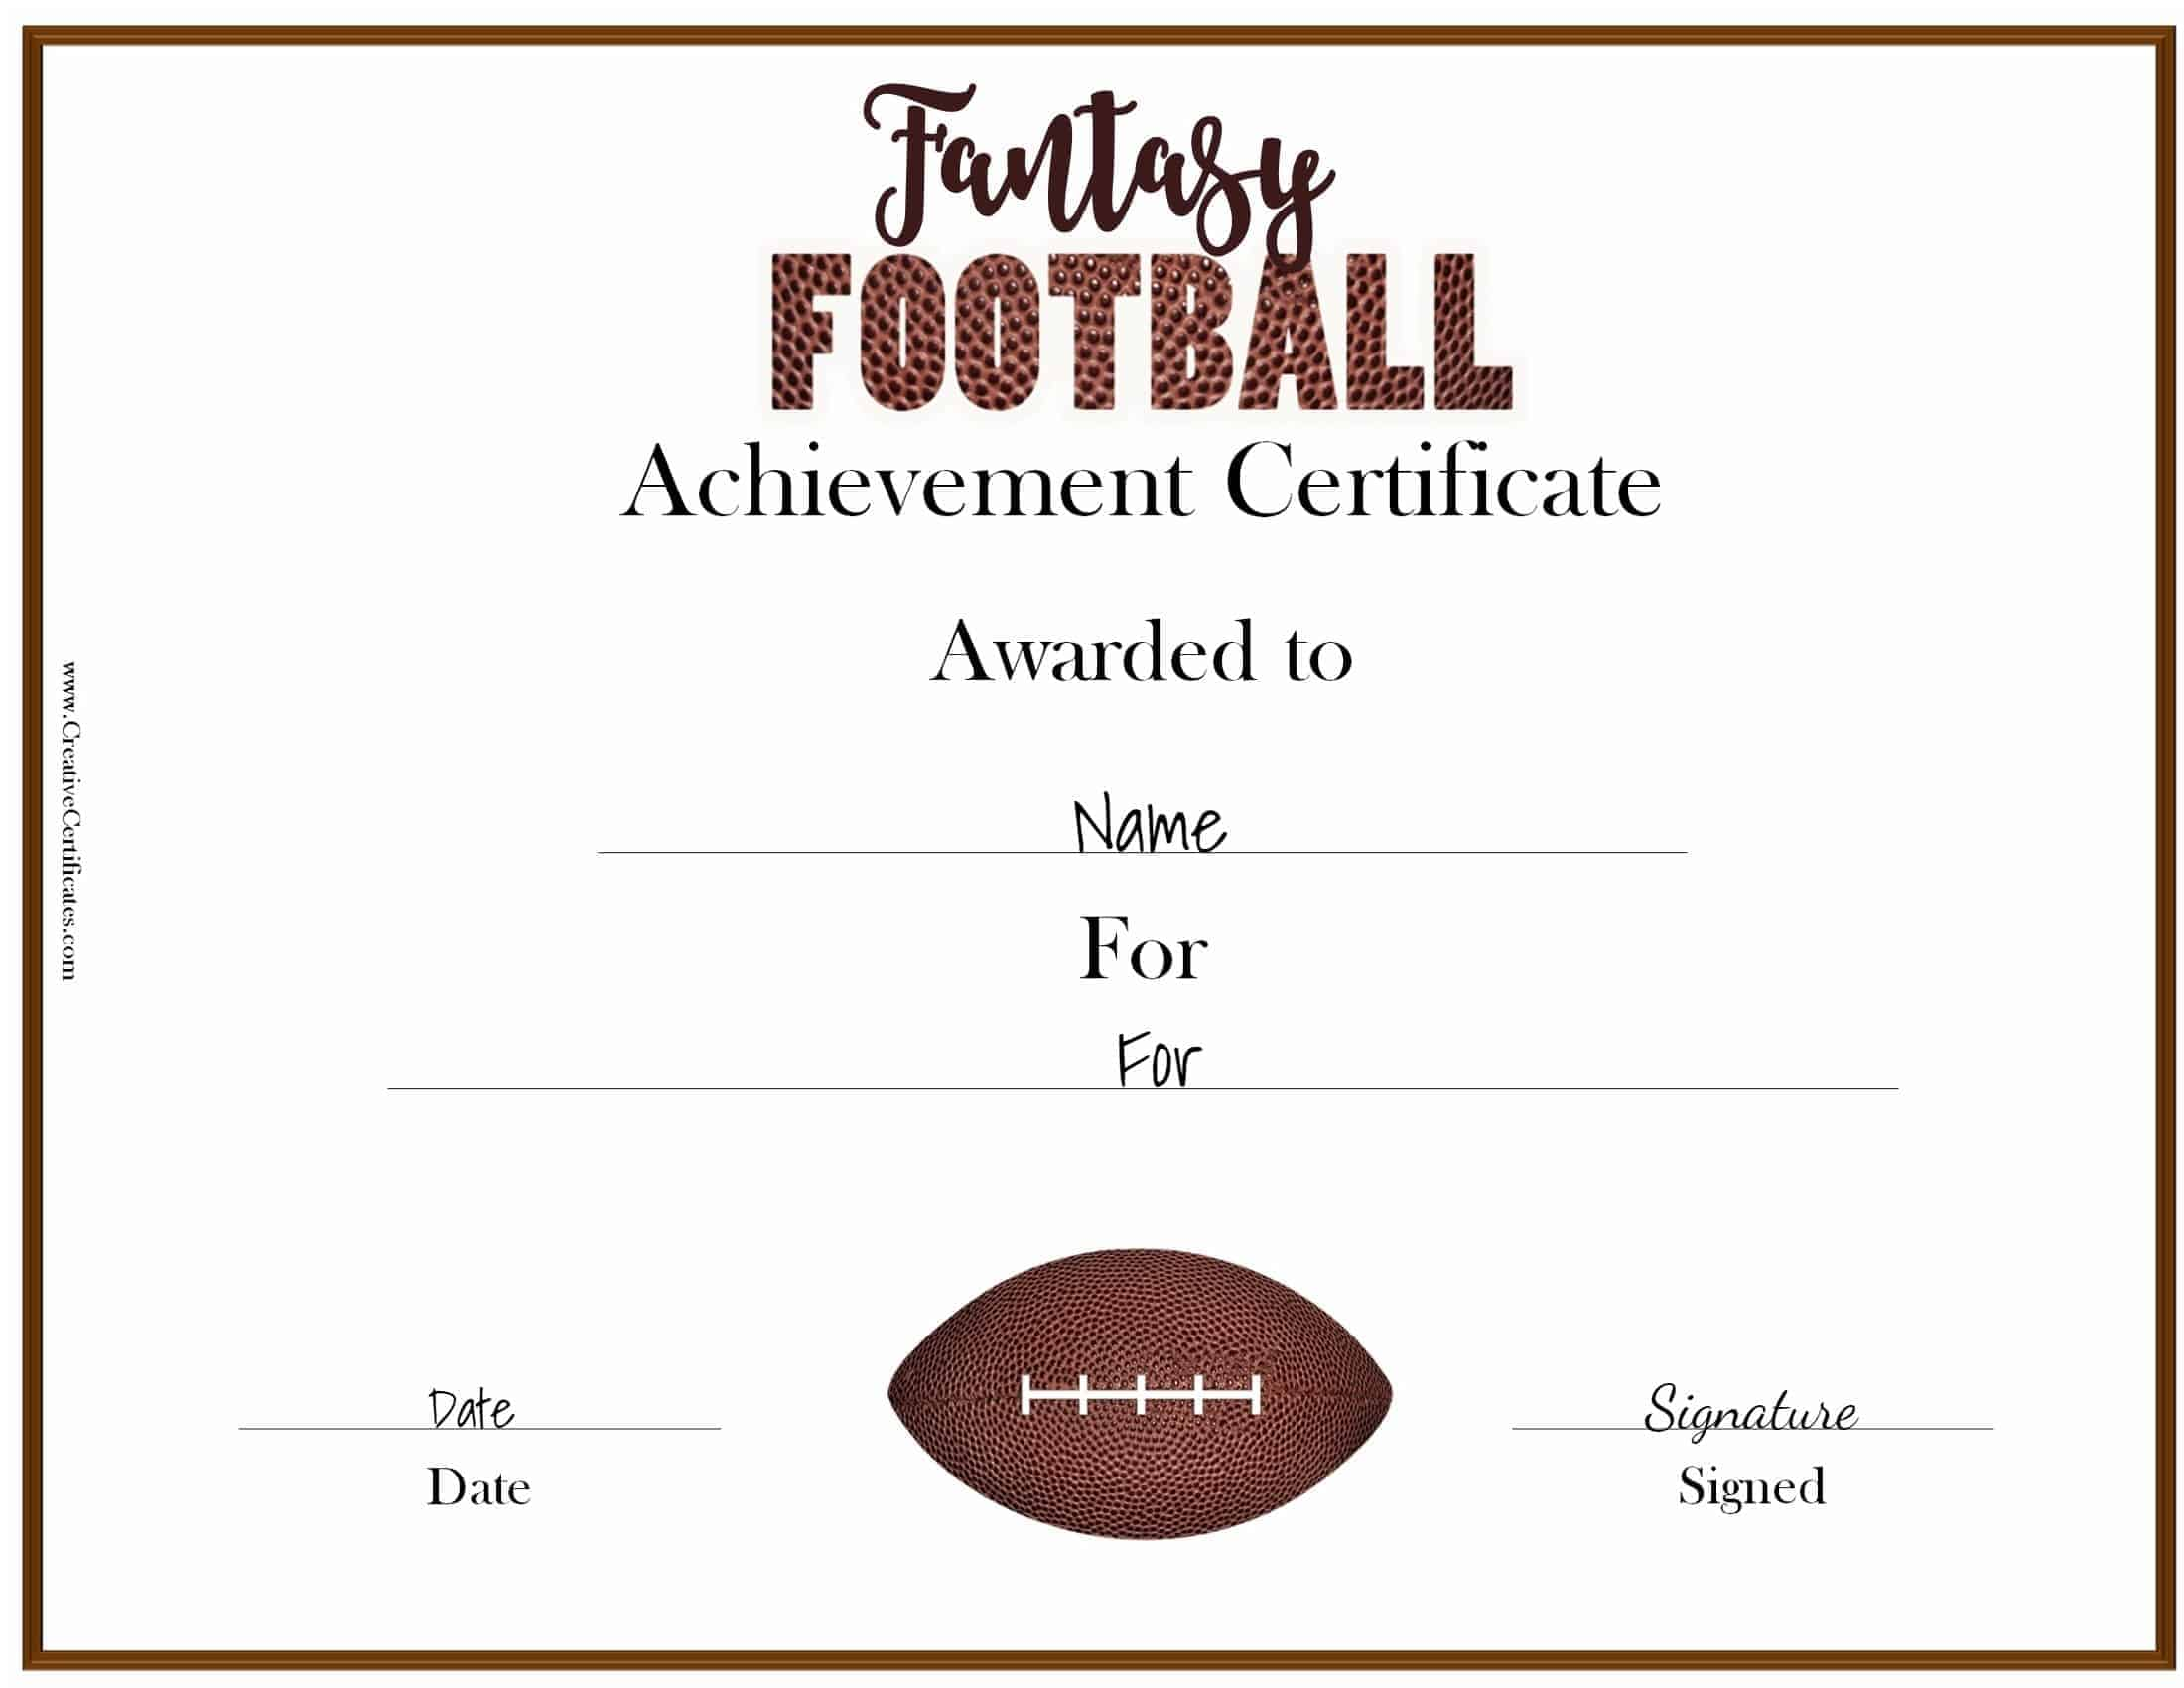 Fantasy football awards fantasy football award yelopaper Choice Image